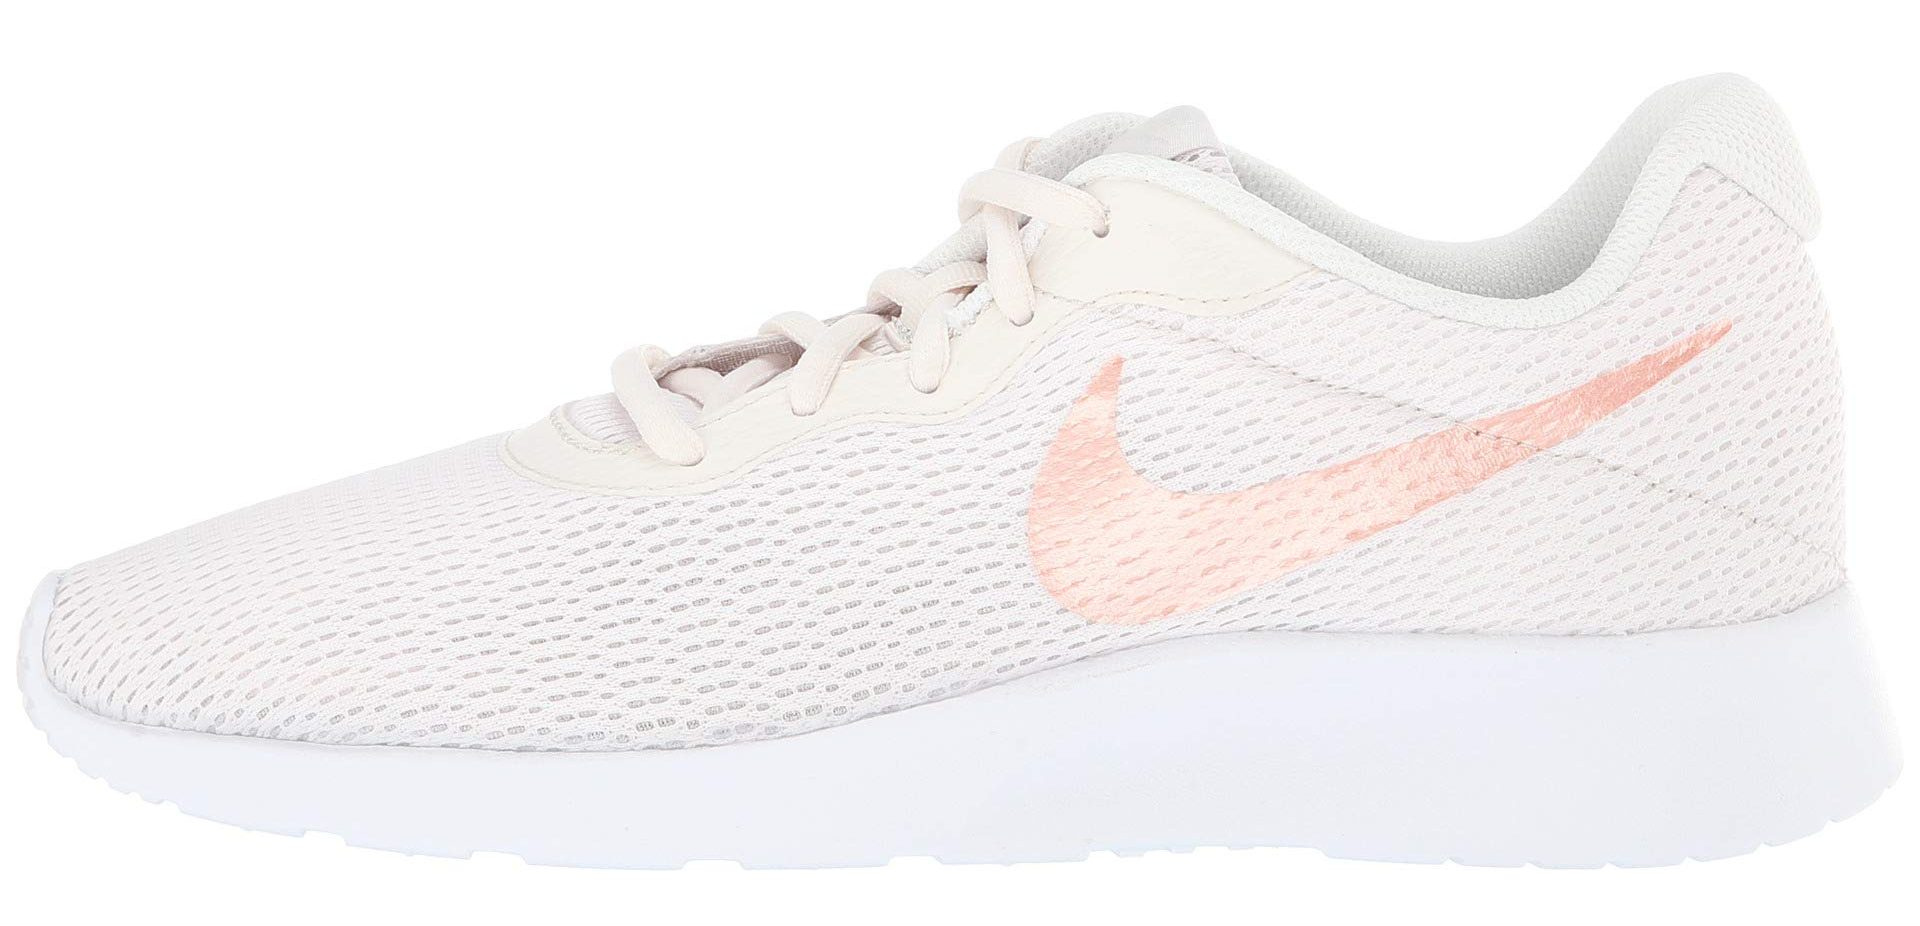 white and pink side sneaker